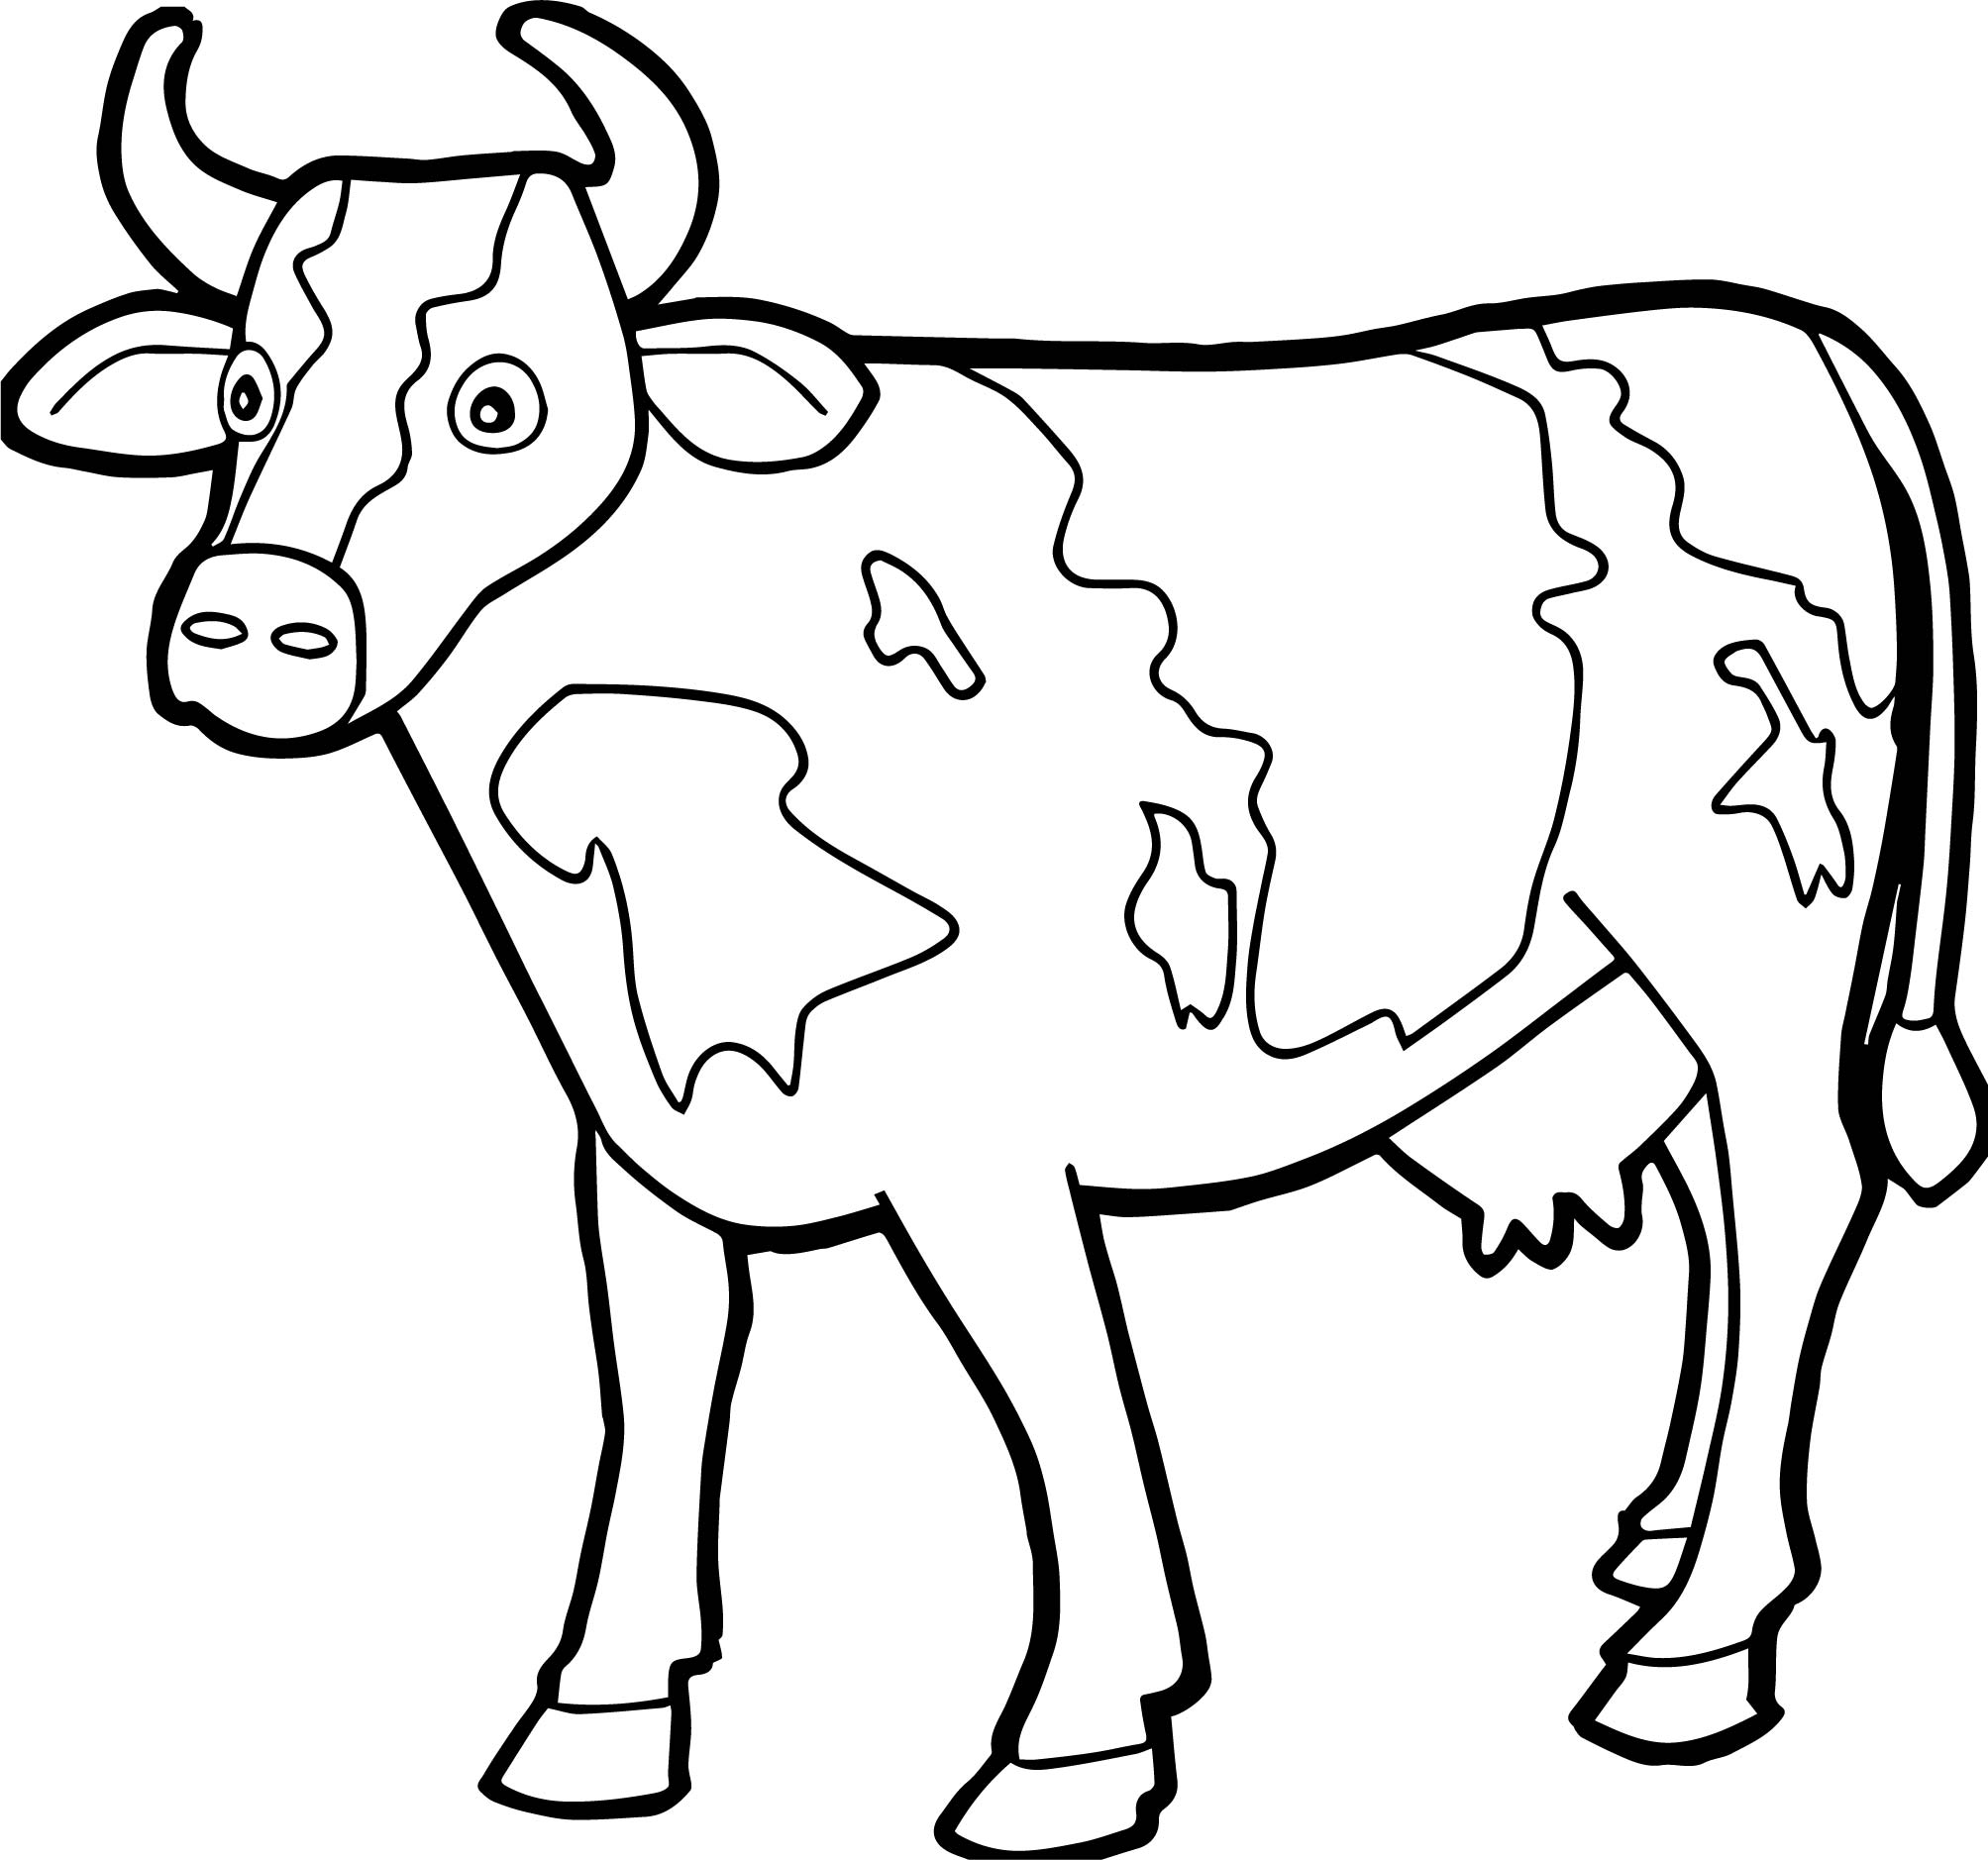 Farm Animal Staying Cow Coloring Page Wecoloringpage